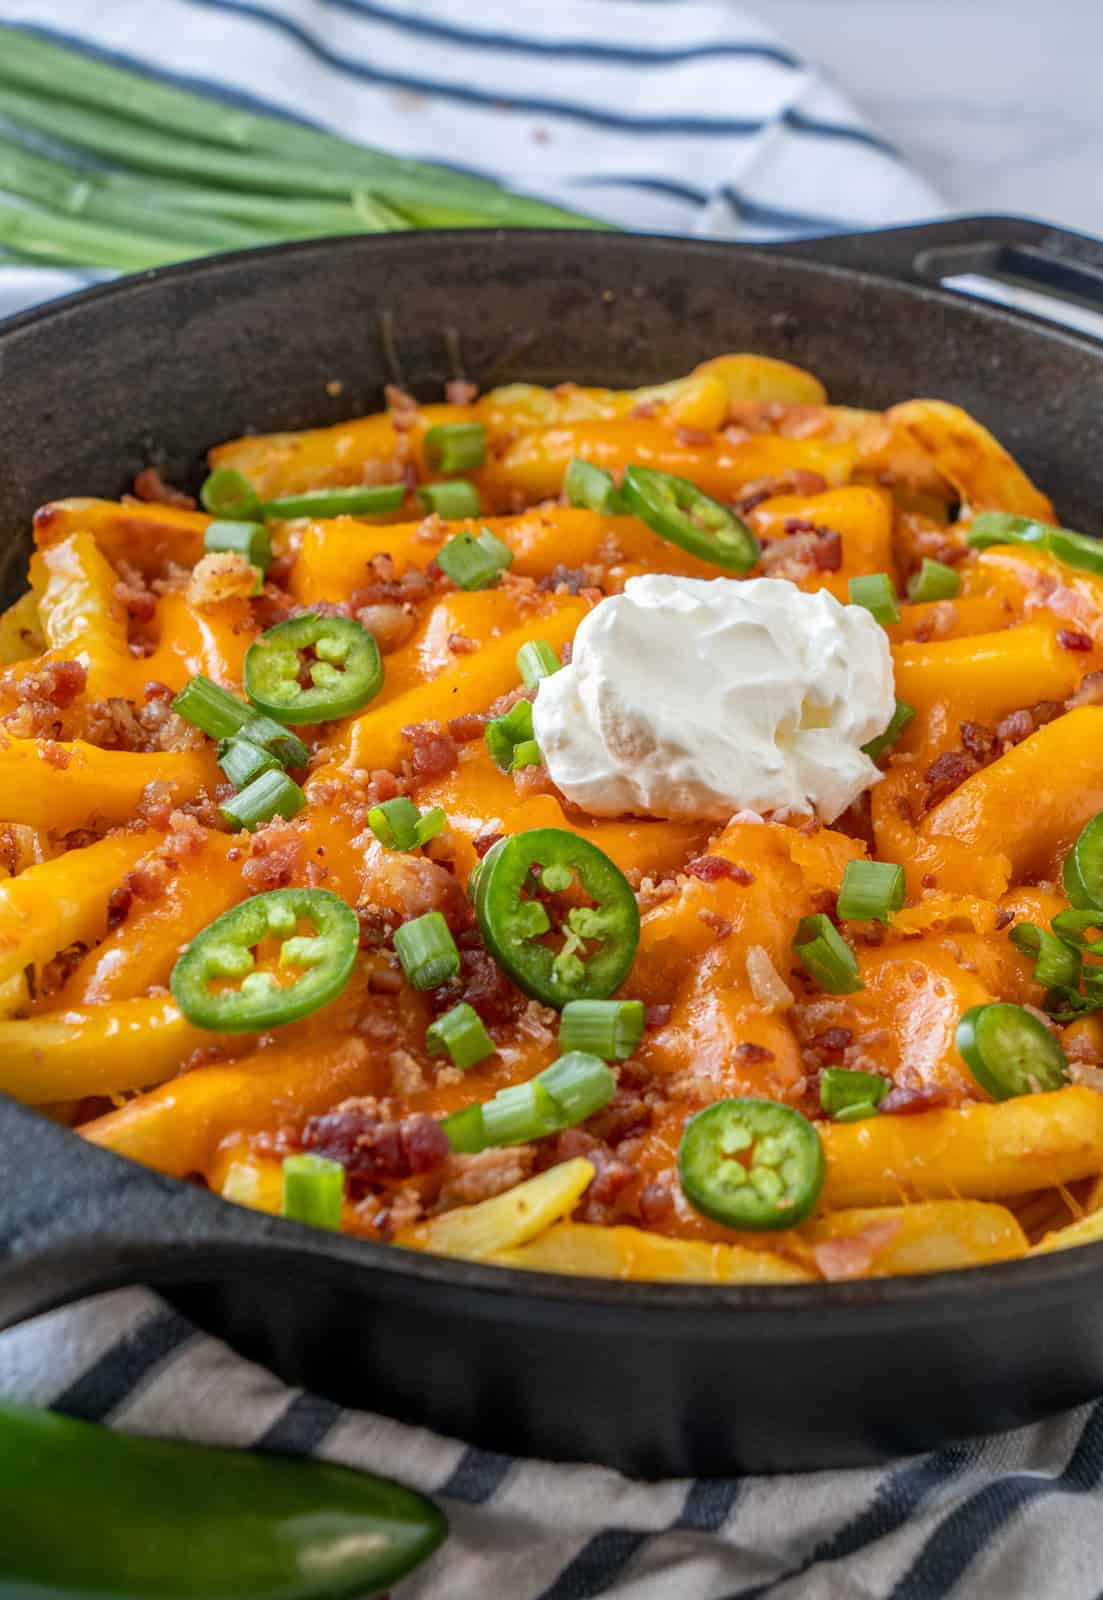 Loaded fries in cast iron skillet with toppings